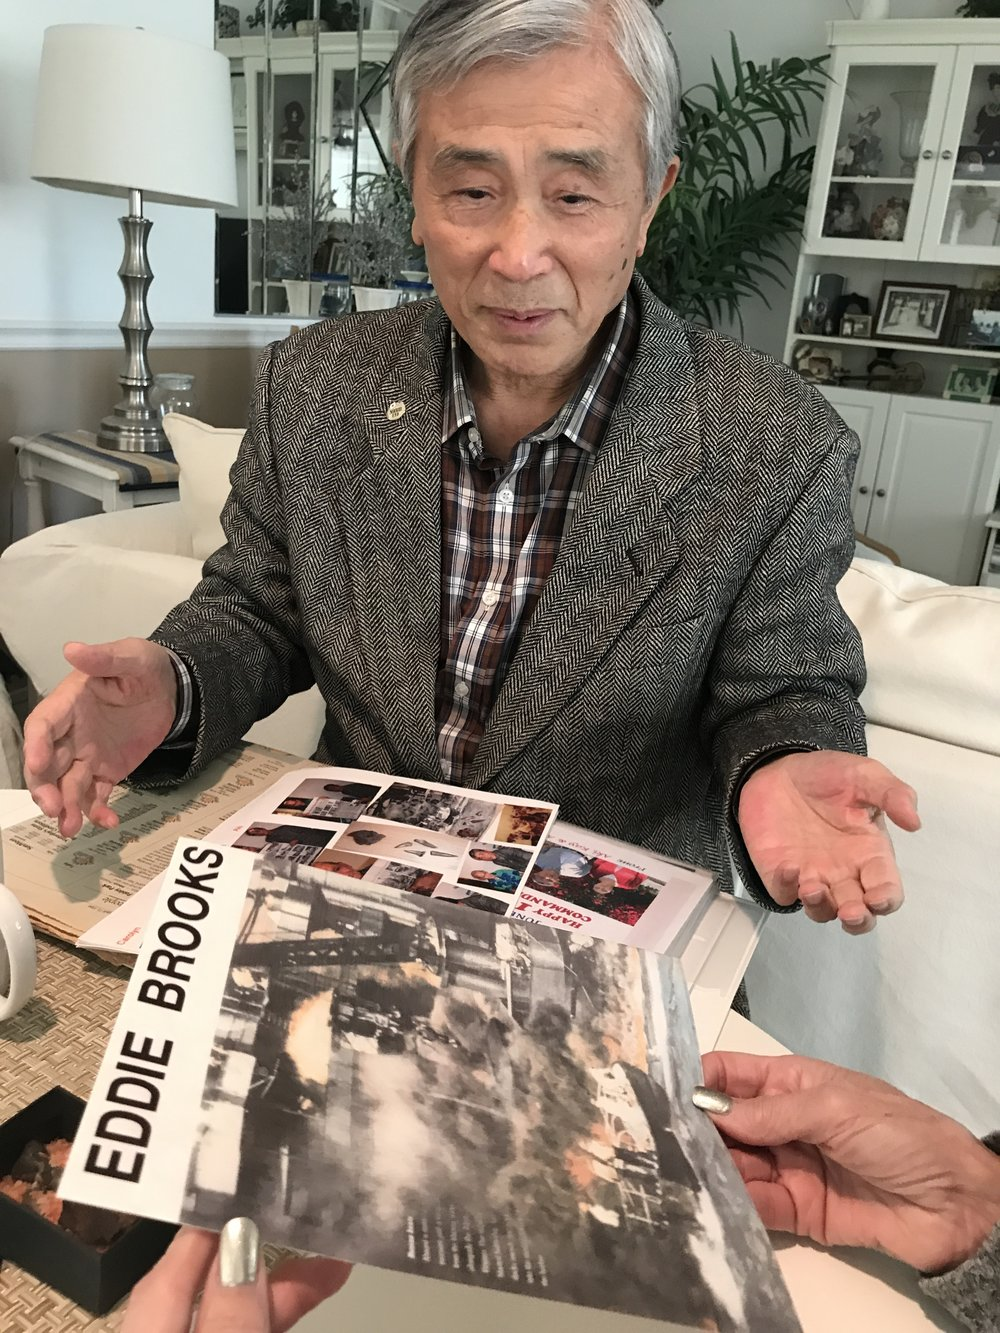 Akira Tsurumake to help find relatives of Japanese Pilot and Crew of the Downed plane where Sam Richiusa took the metal for Two Hearts As One original - Circle of Forgiveness Closes